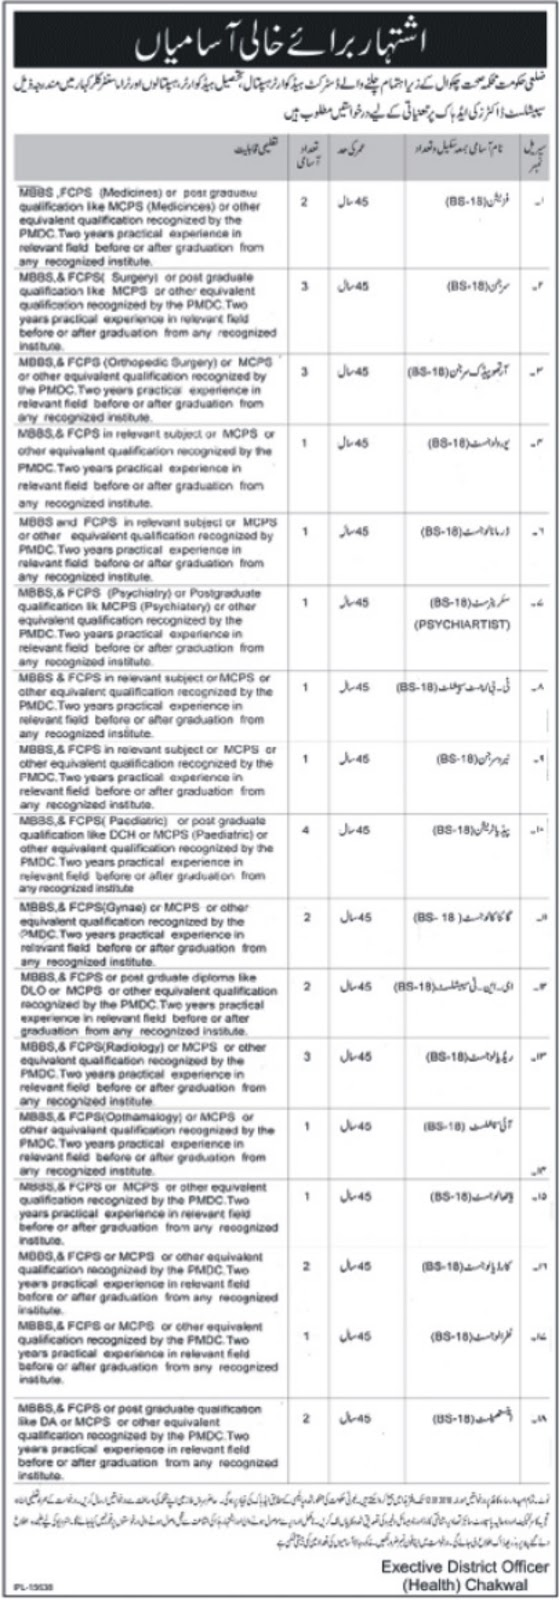 Specialist Doctors BPS-18 Jobs in District Chakwal for Different Fields.